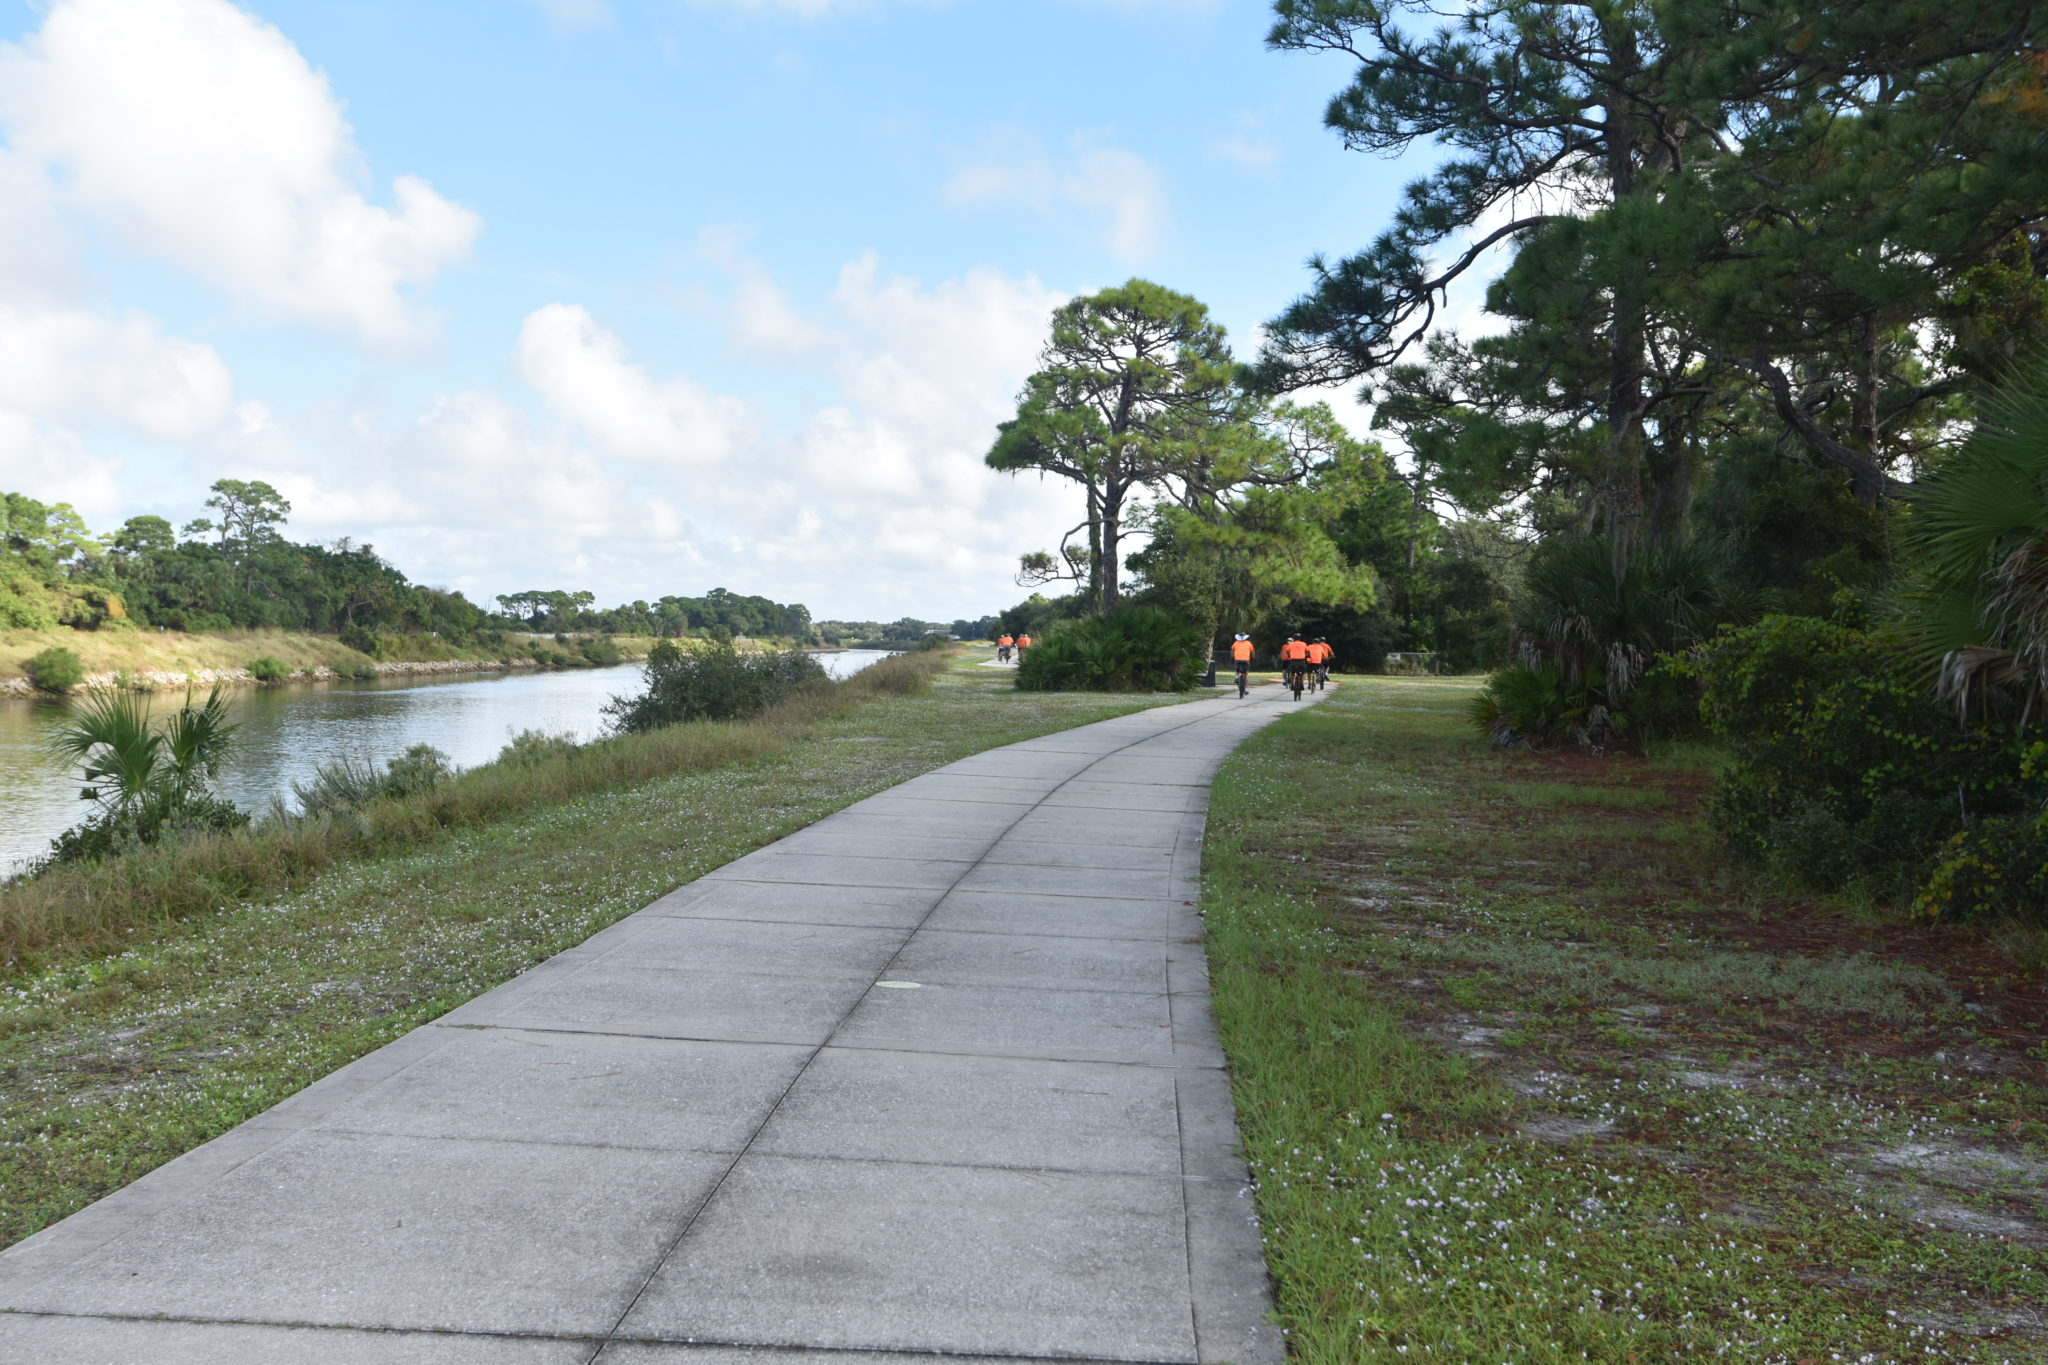 With a connecting trail that goes 30 miles North to Sarasota.